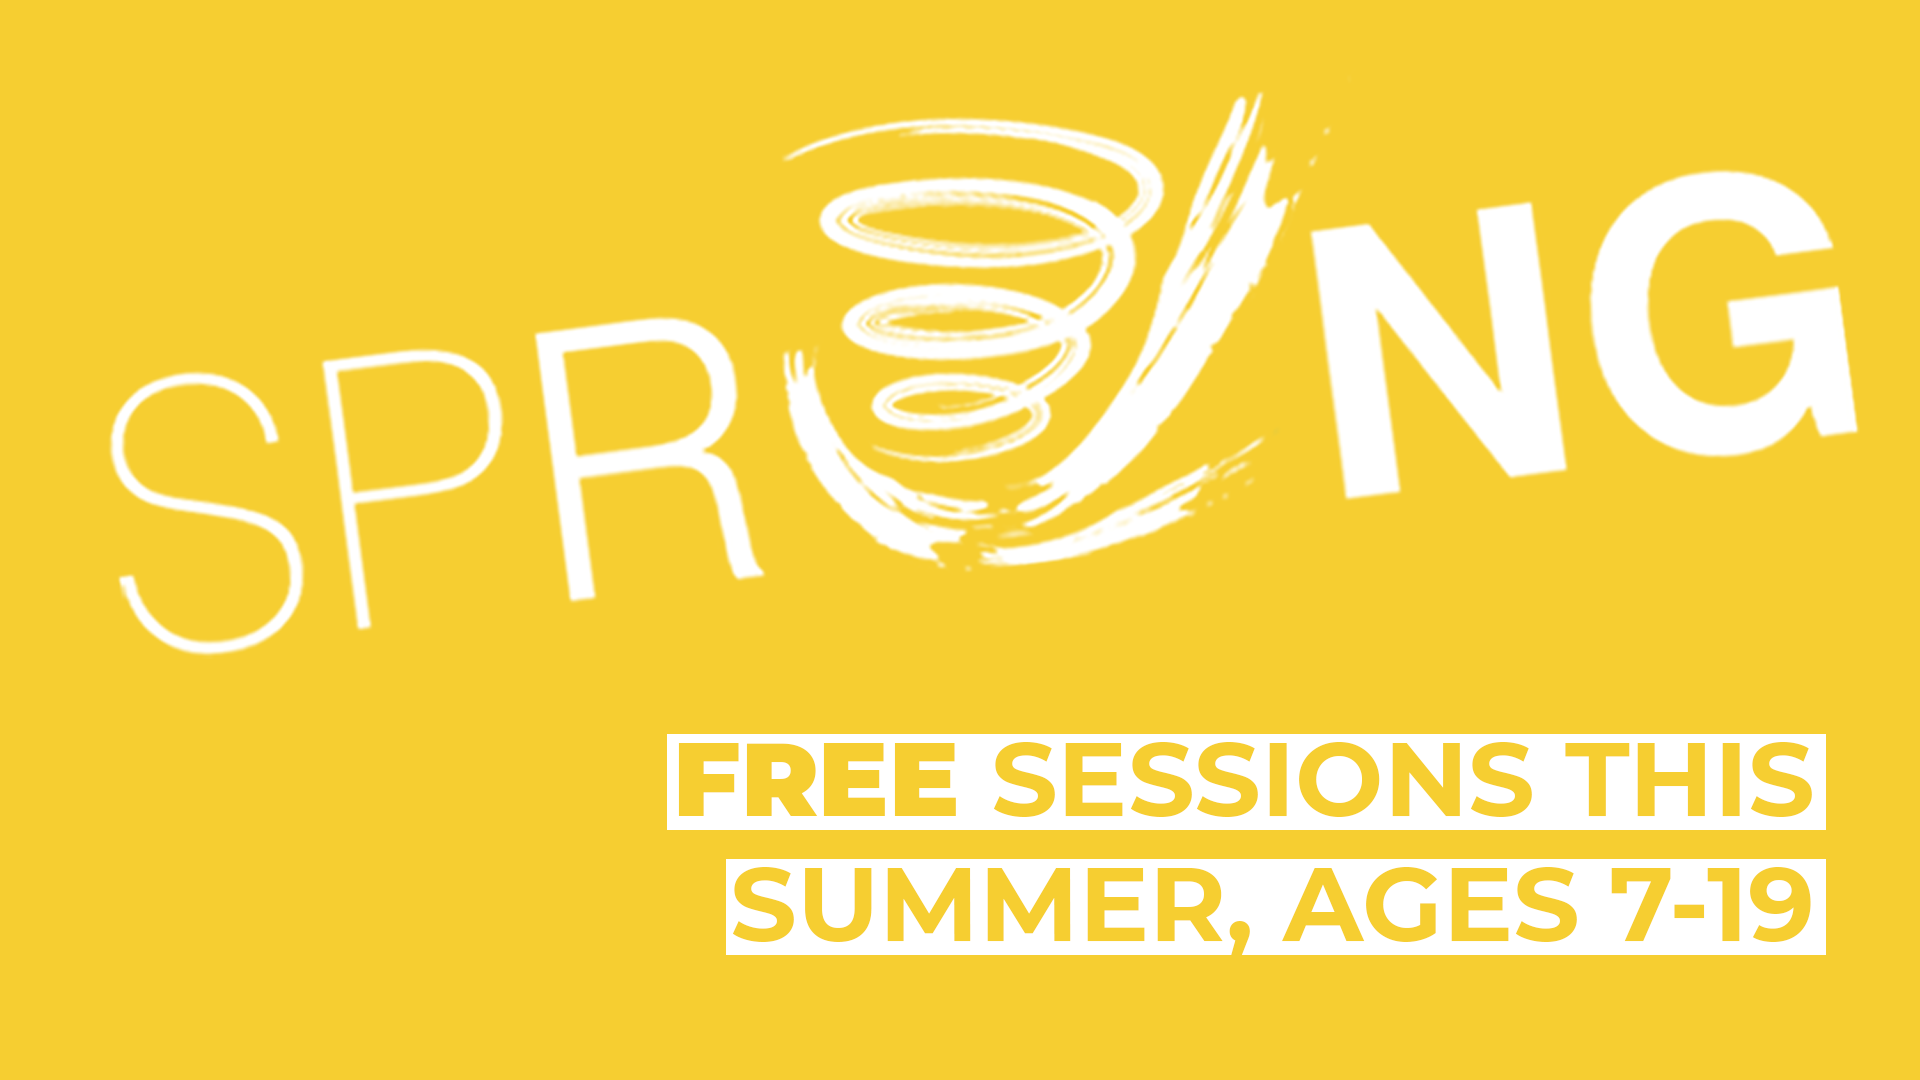 FREE Sprung Summer Workshops in Physical Theatre, Ages 7-19